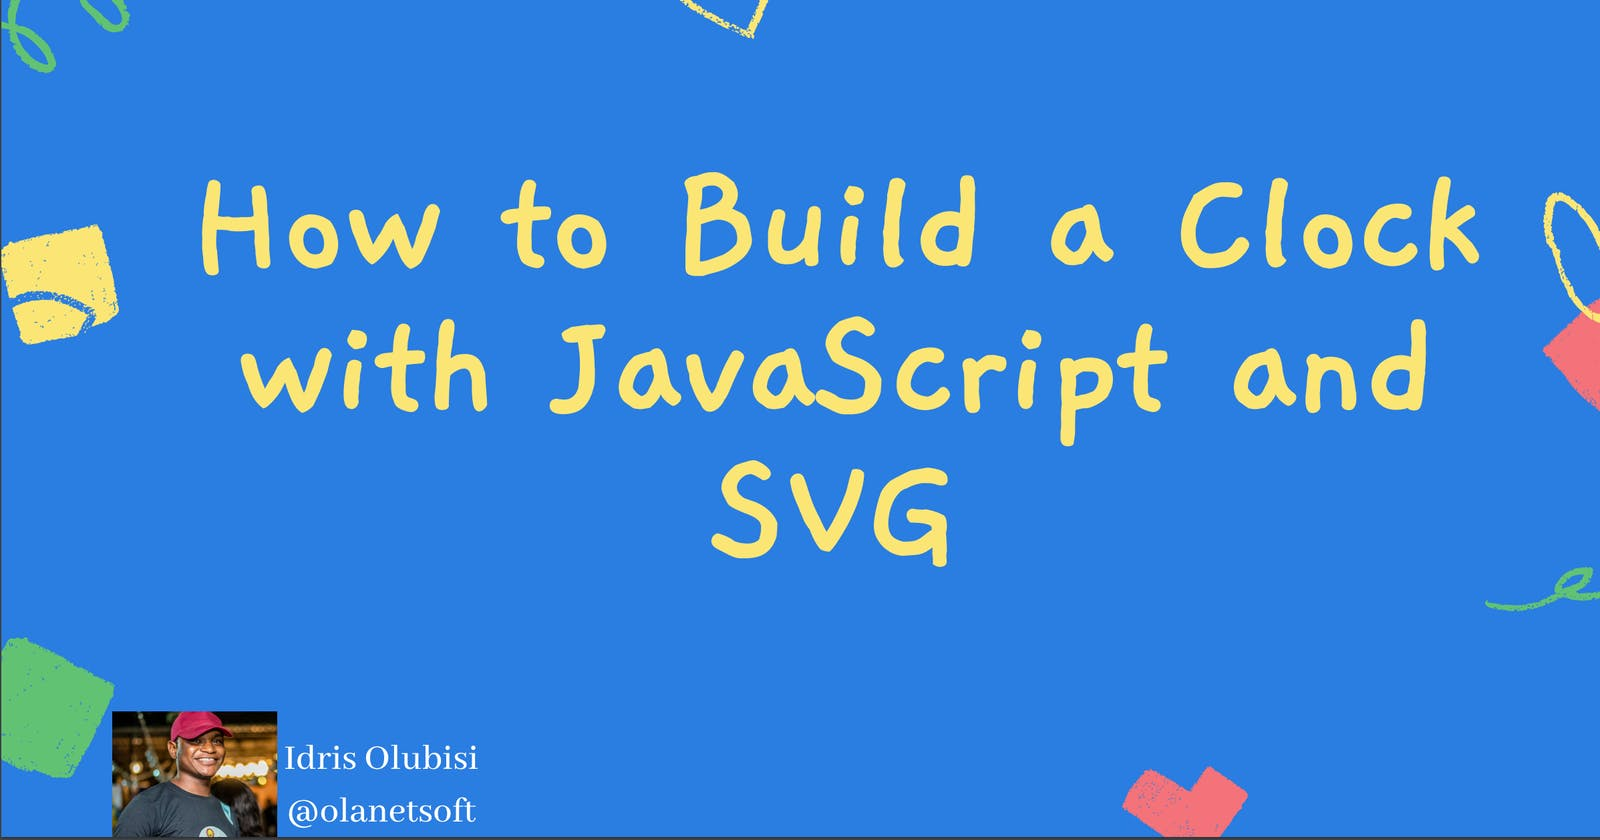 How to Build a Clock with JavaScript and SVG